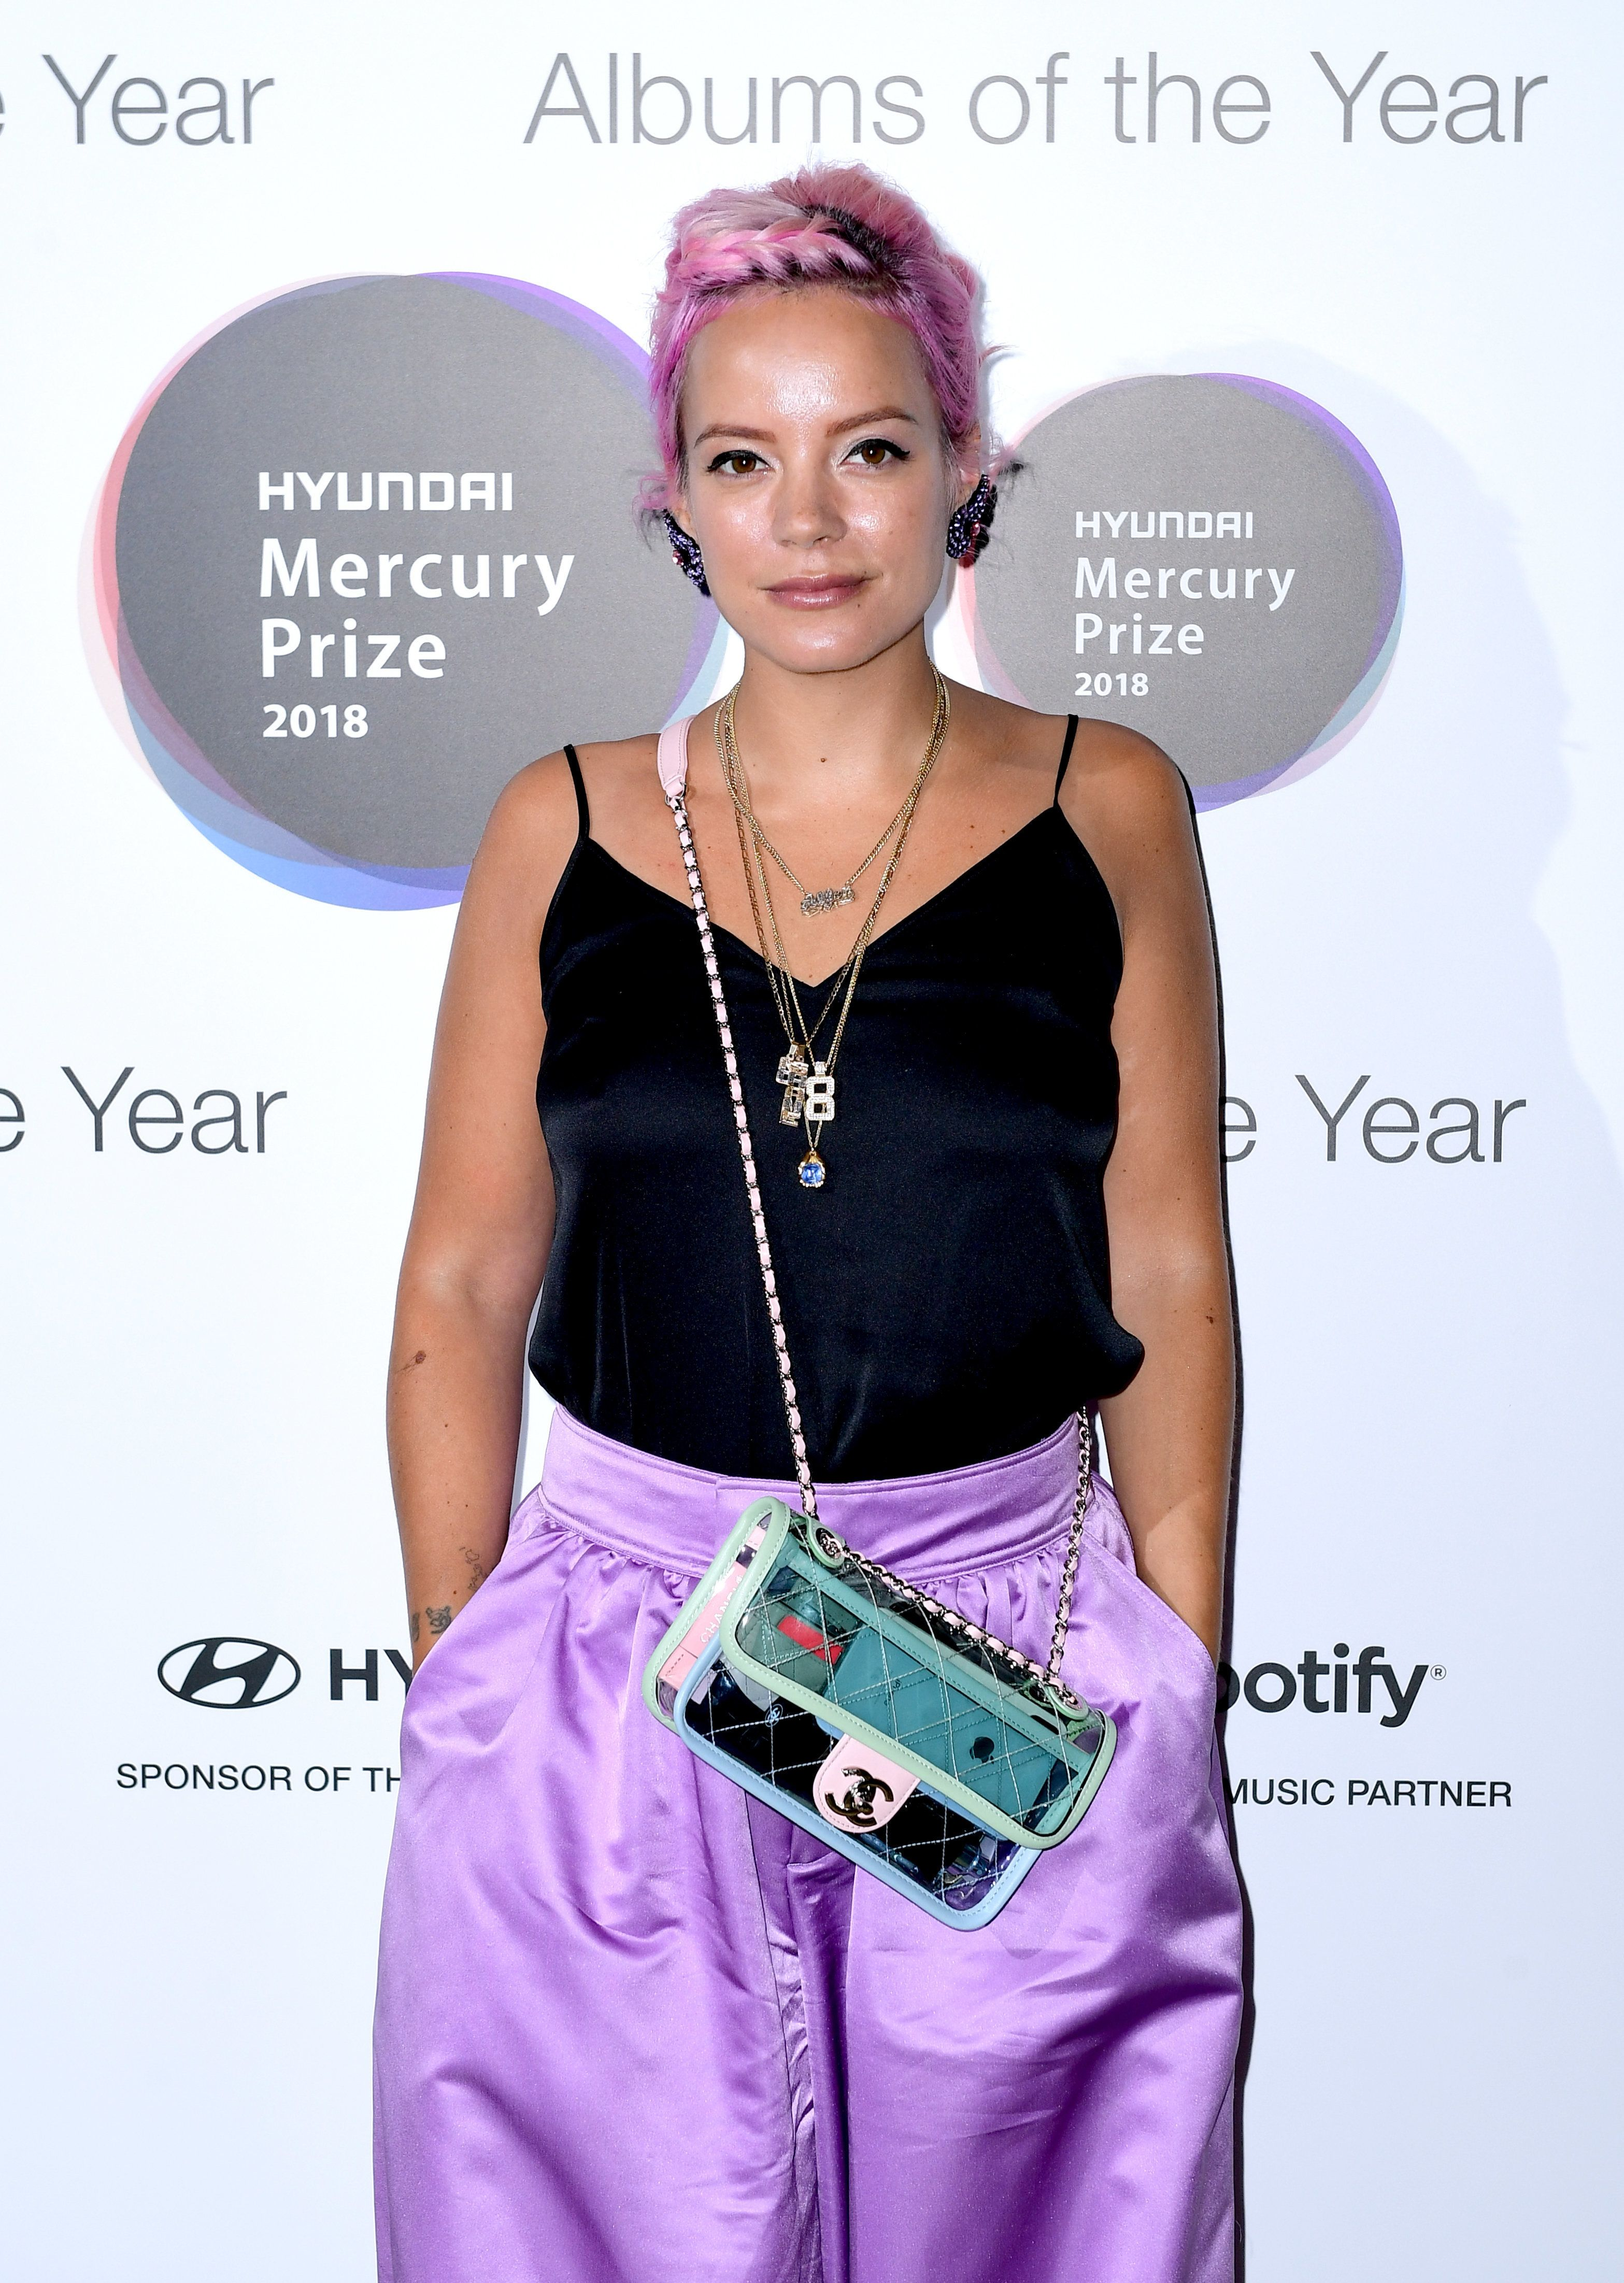 Lily Allen Claims She Was Sexually Assaulted By Music Industry Exec As She Slept